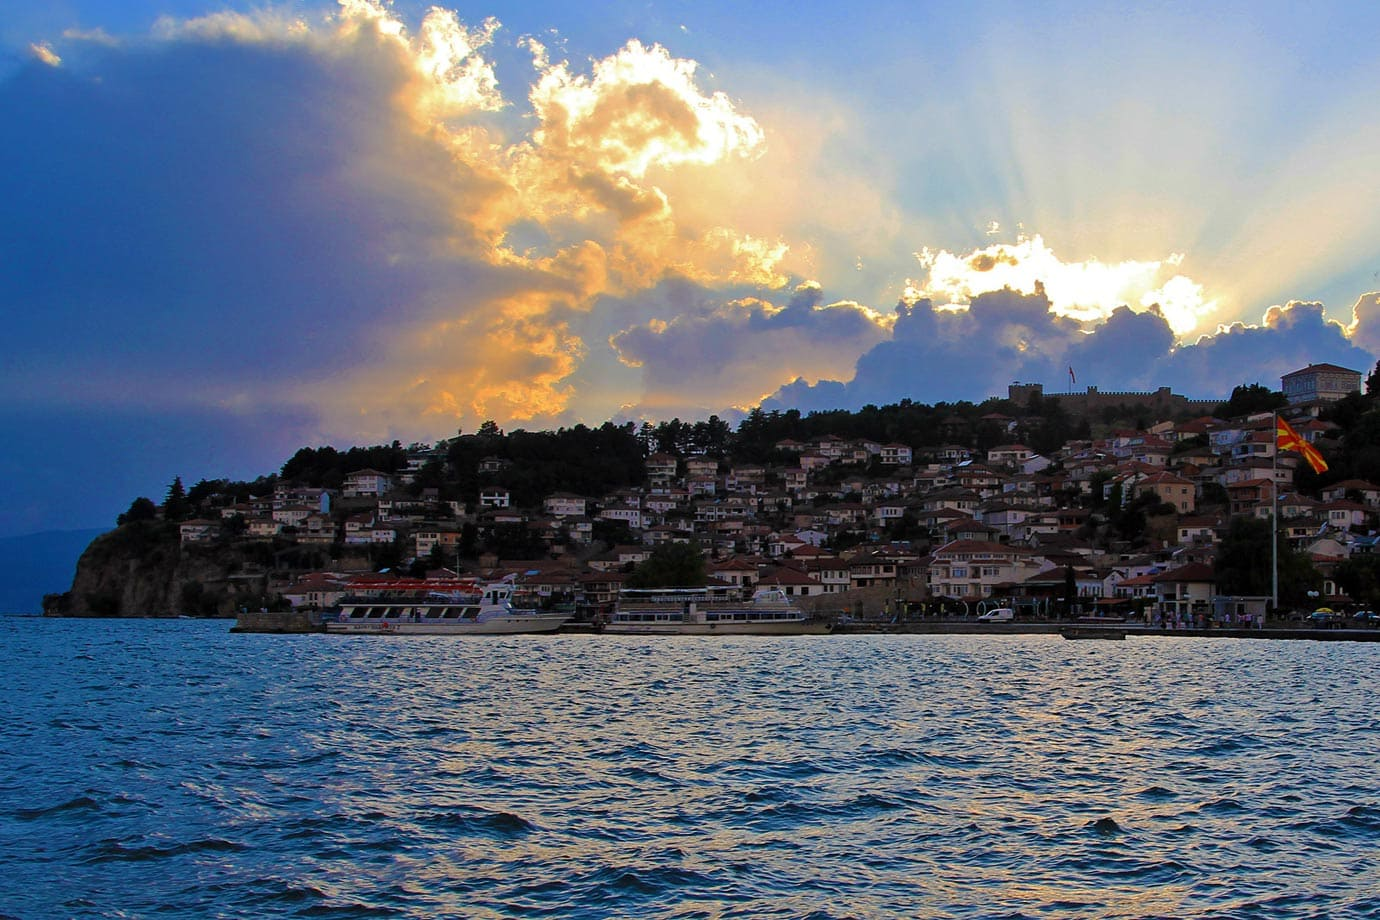 Lake Ohrid is thought to be well over three million years old